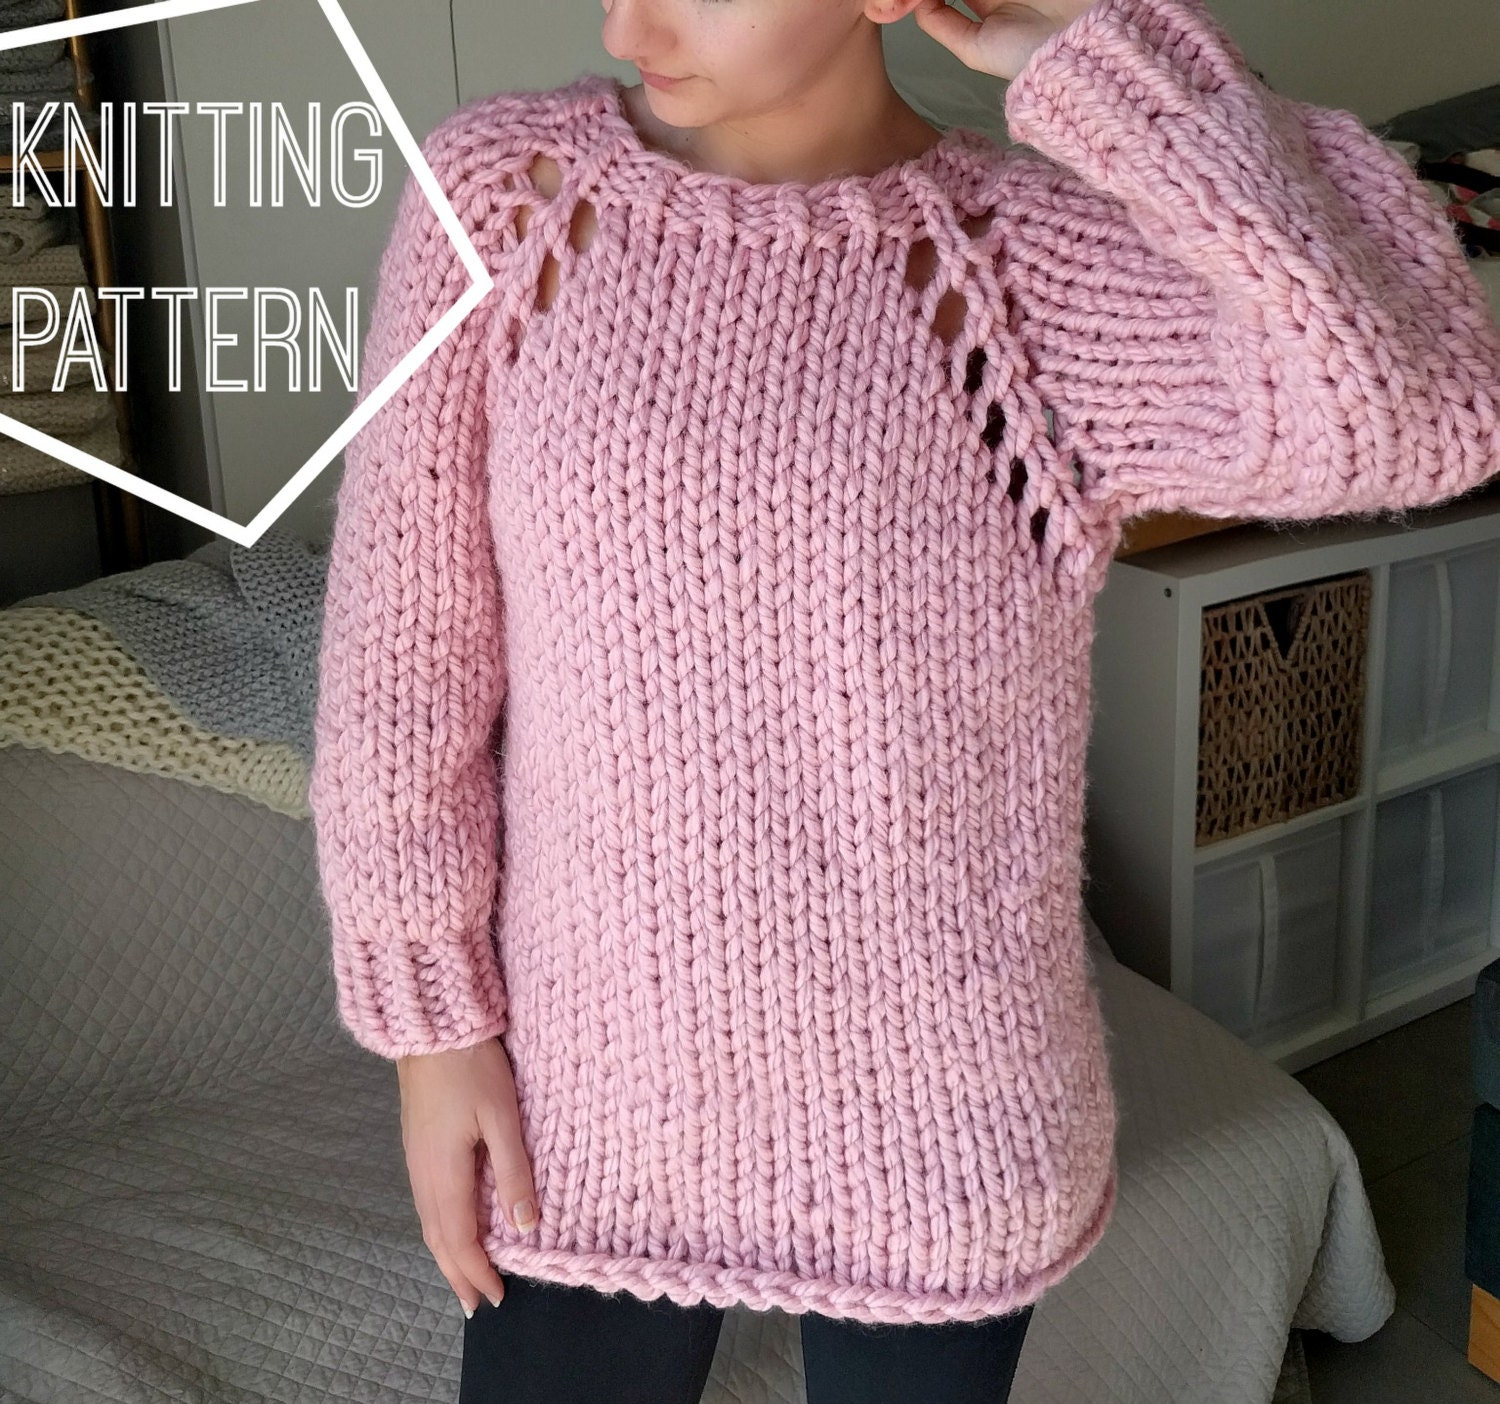 Chunky Knit Sweater Pattern Free : Chunky Knit Sweater Pattern, Top Down Raglan Sweater Pattern, Super Chunky Kn...